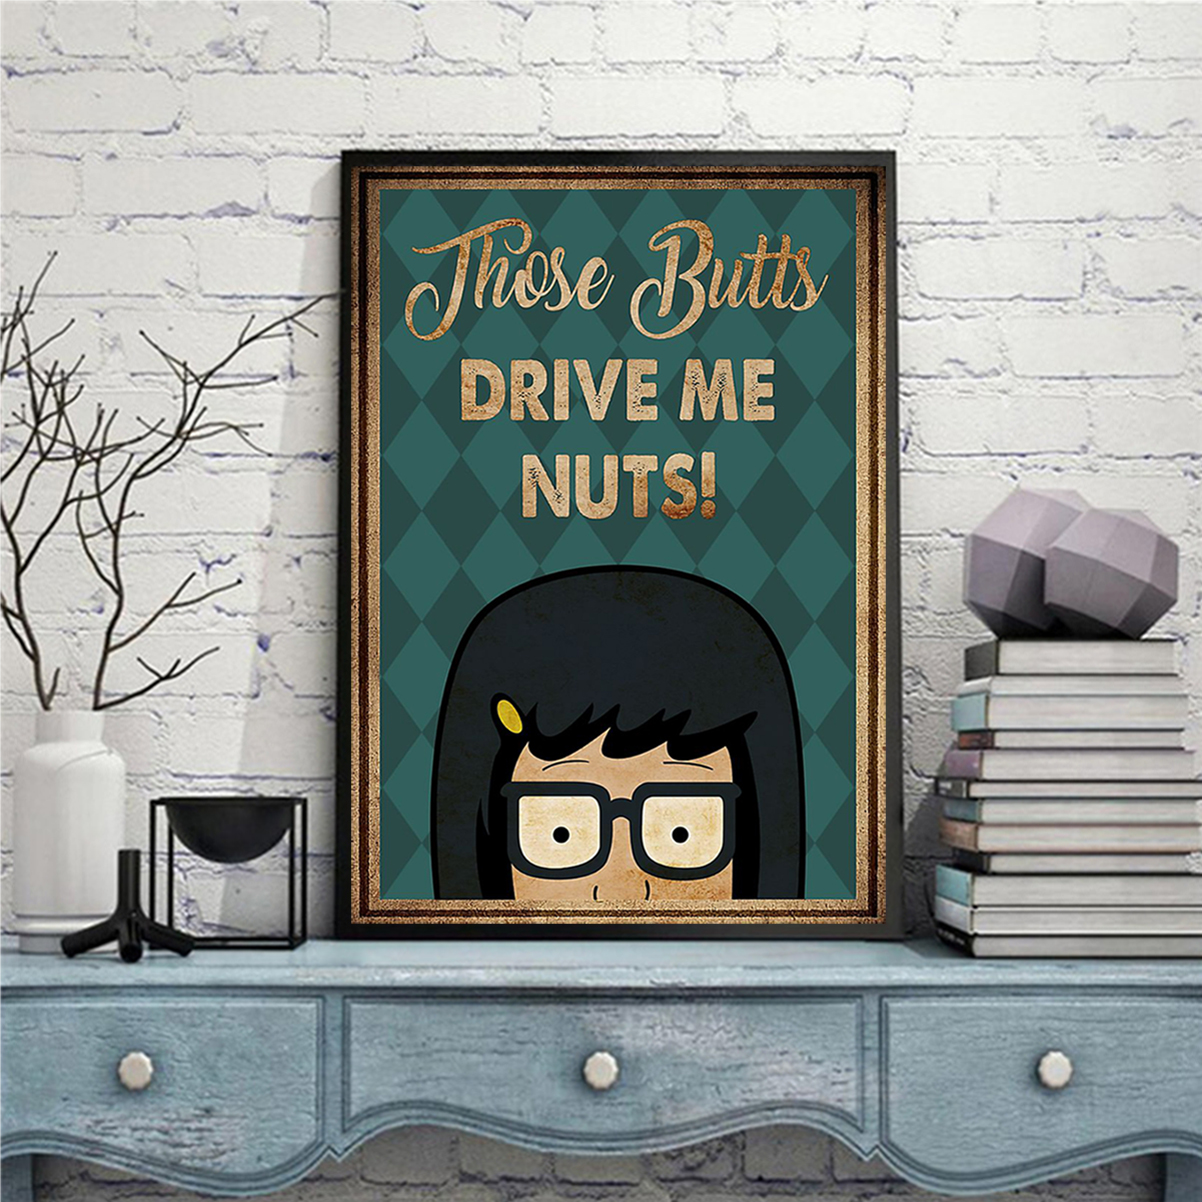 Tina belcher those butt drive me nuts poster A2